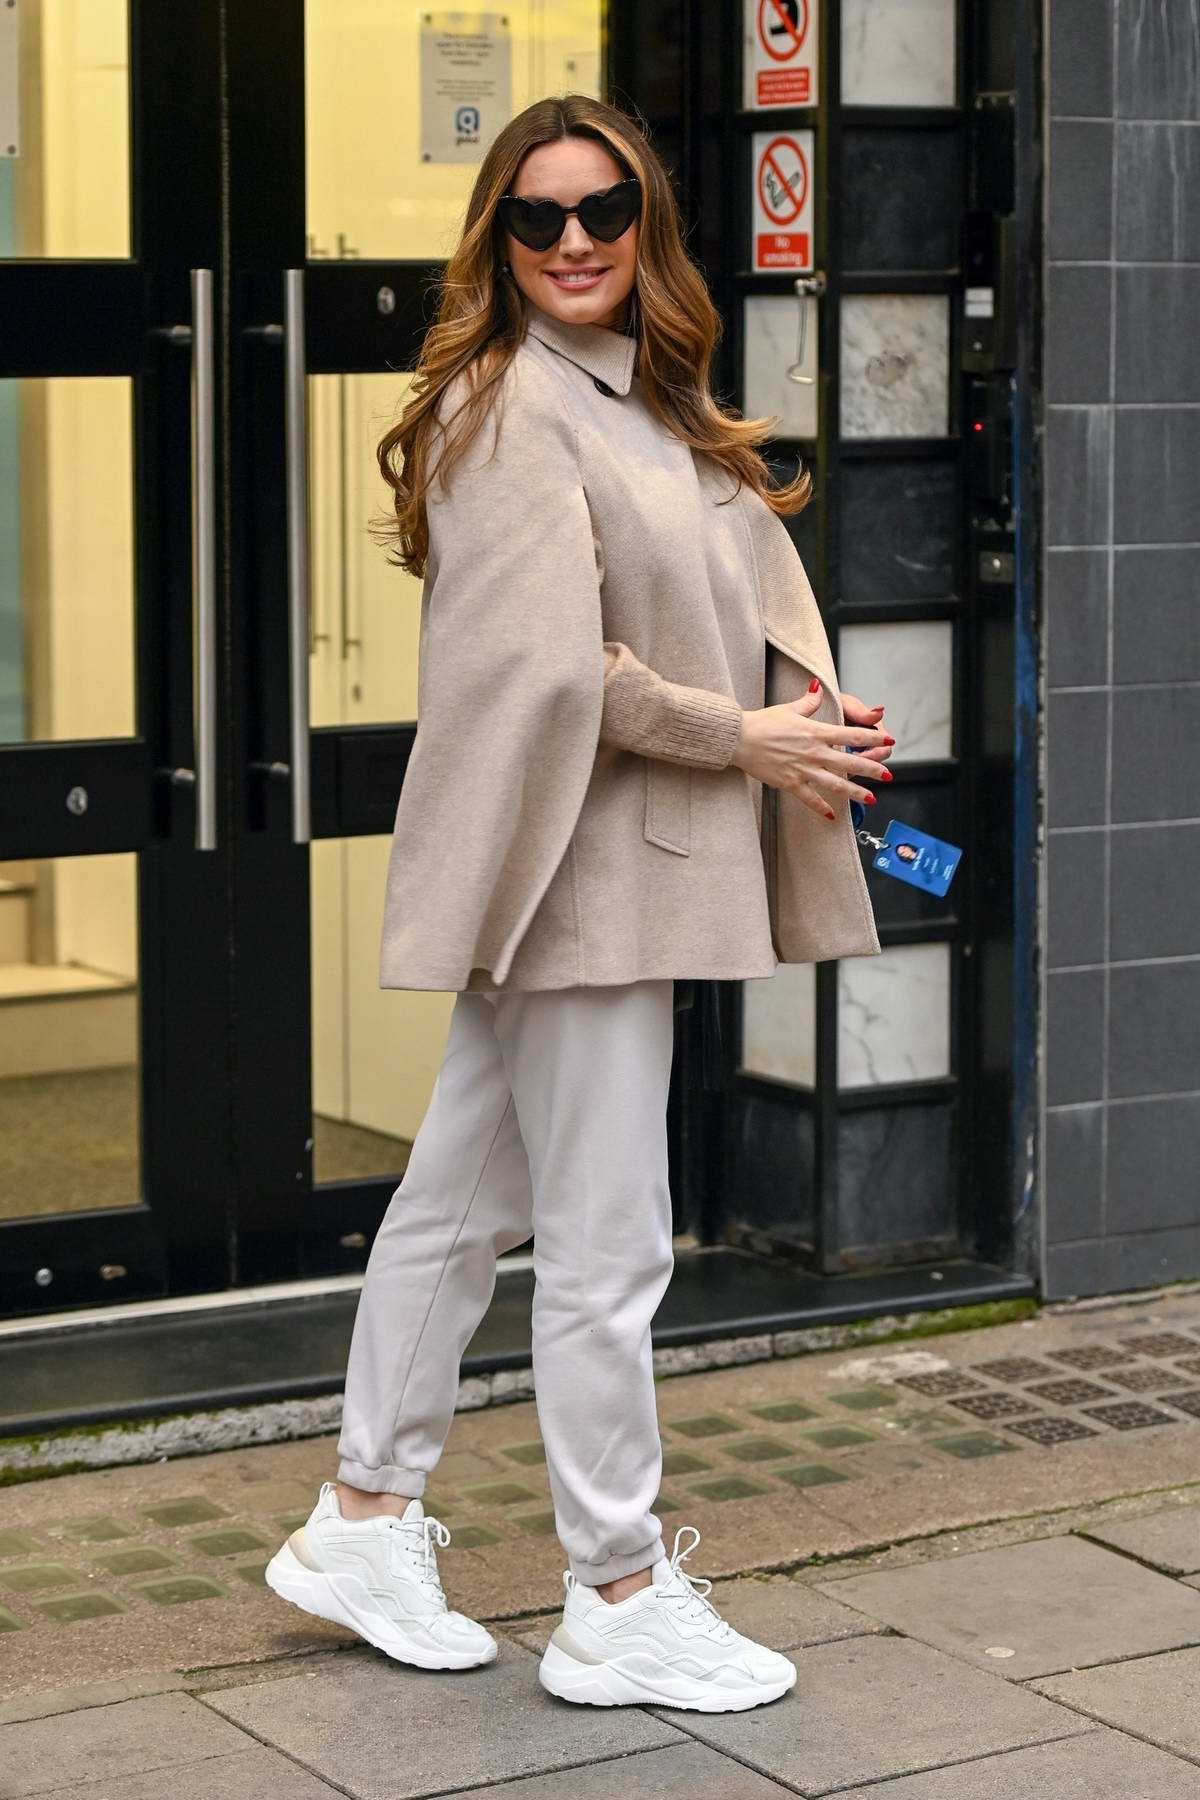 Kelly Brook shares a bright smile as she arrives at Global Radio in London, UK